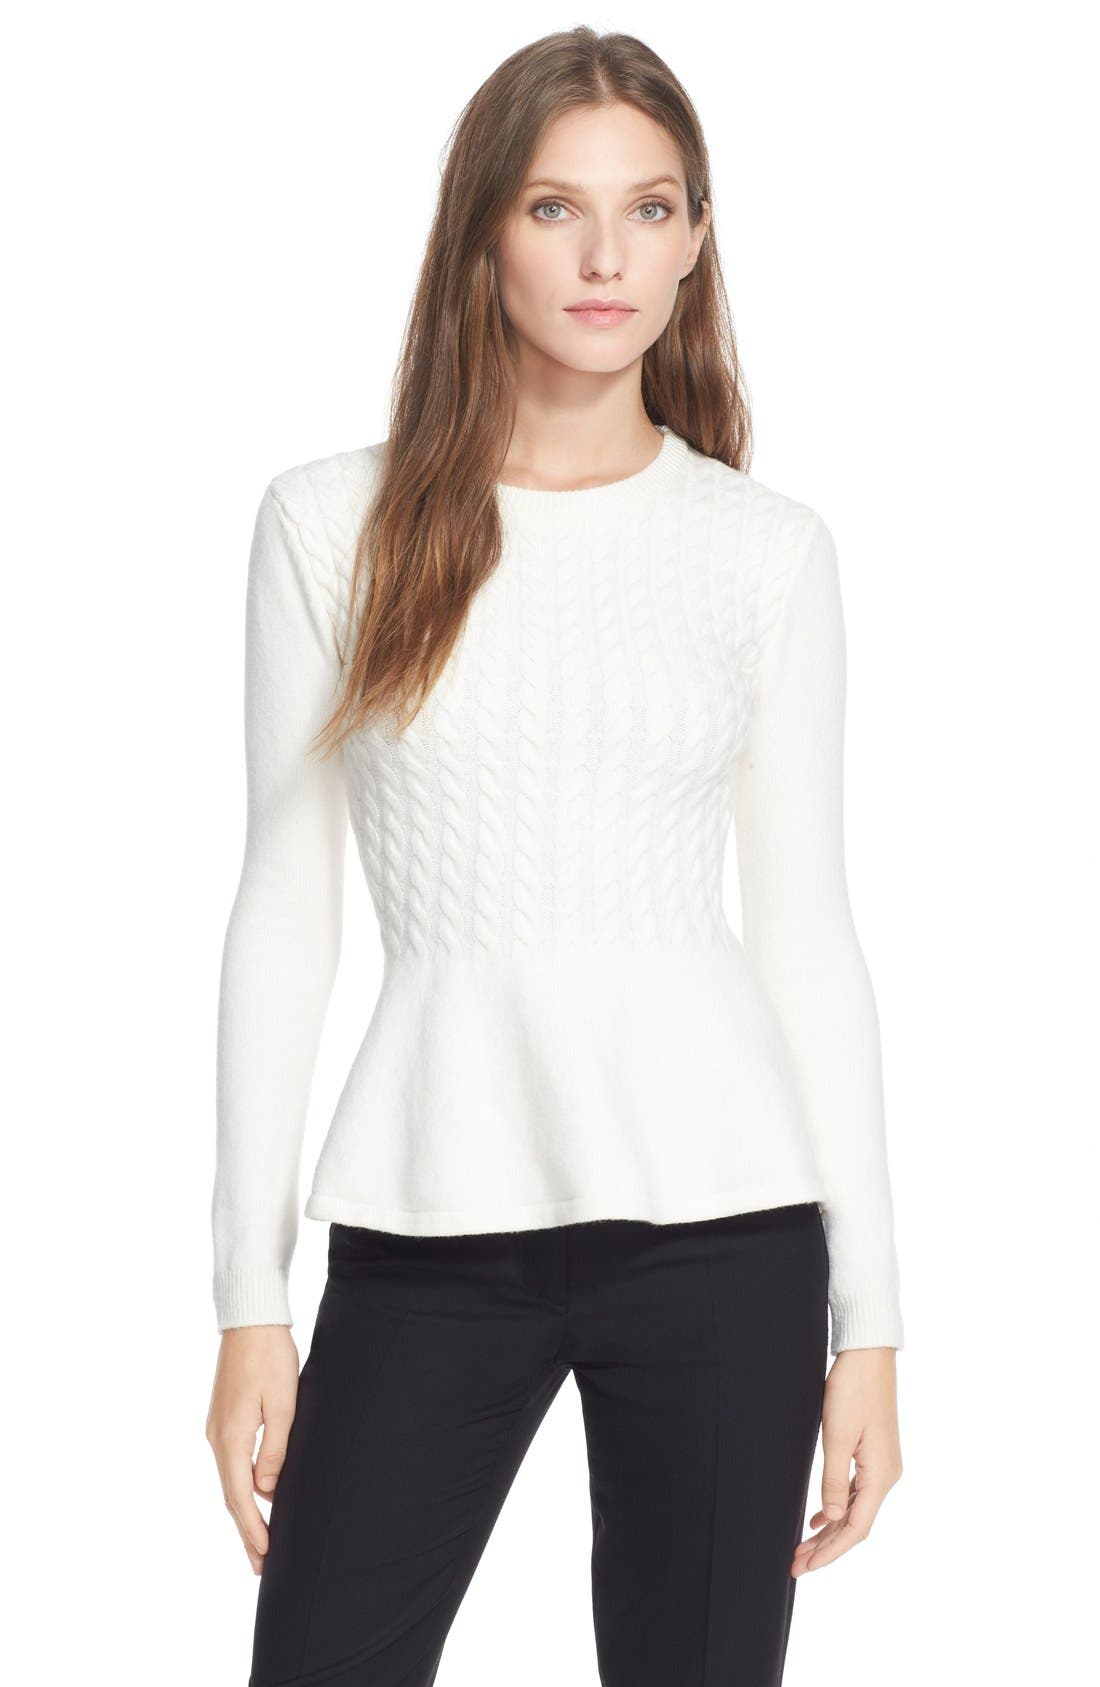 Alternate Image 1 Selected - Ted Baker London 'Mereda' Cable Knit Peplum Sweater